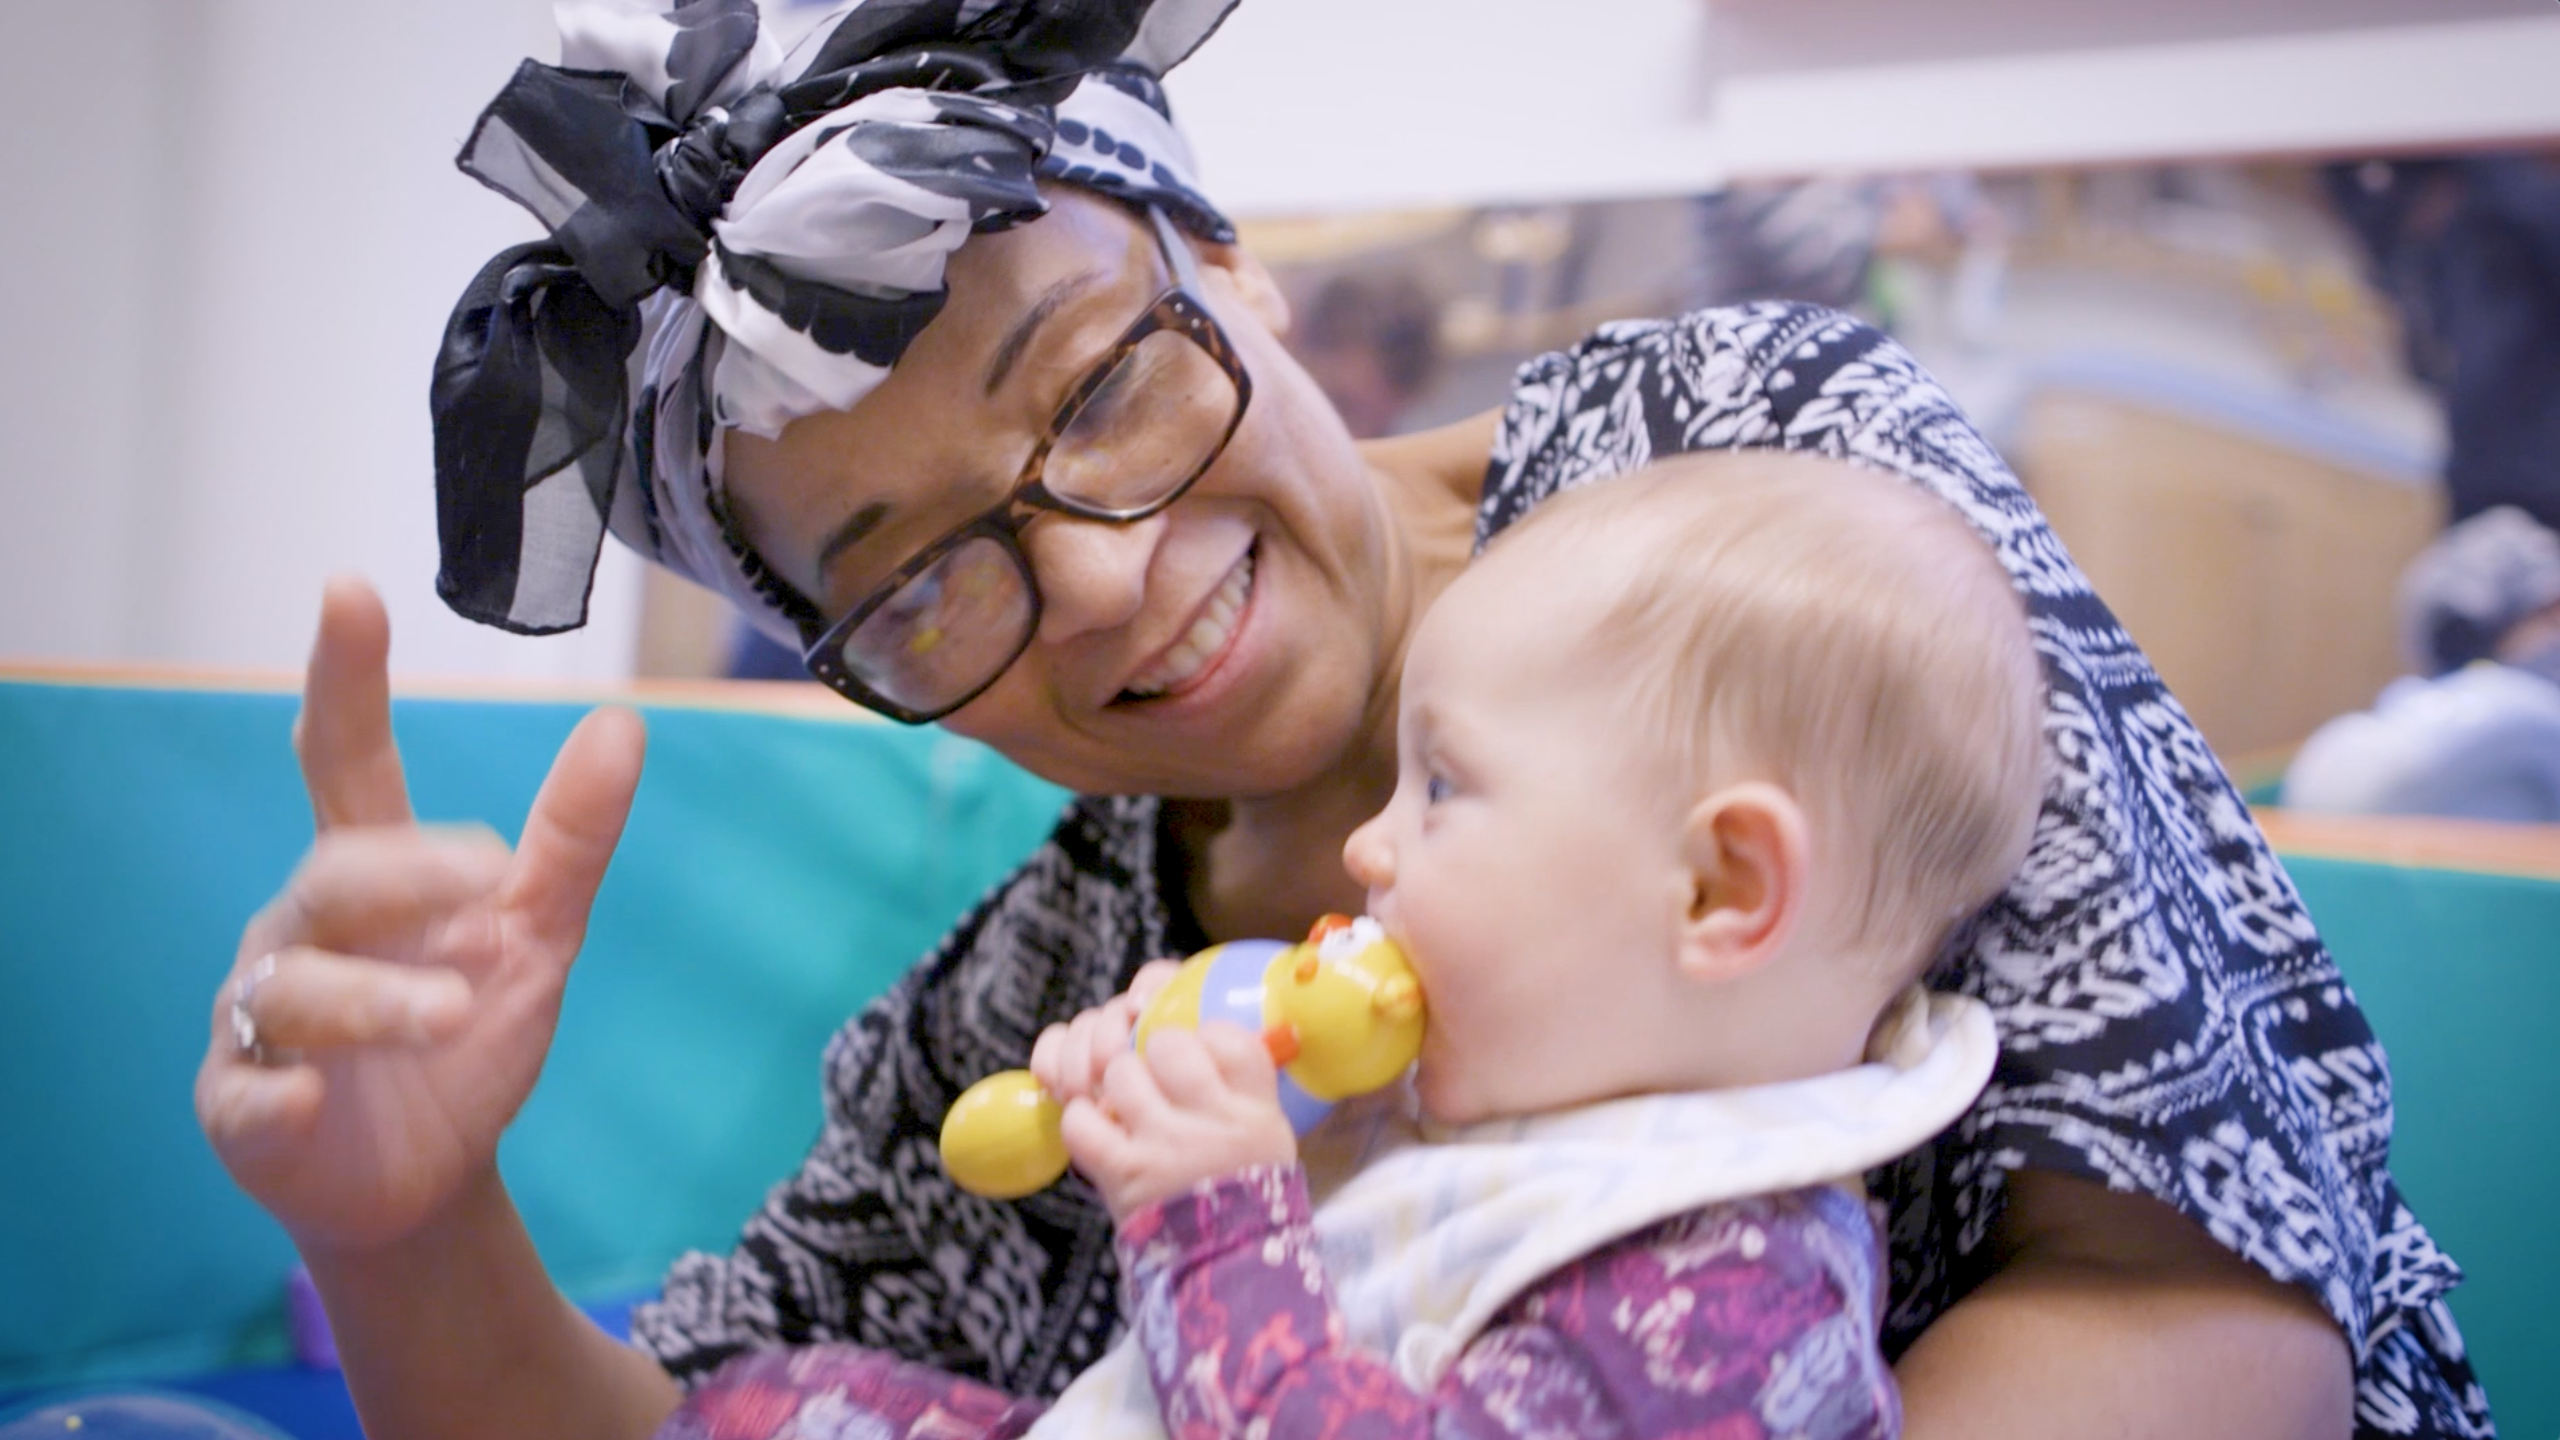 A woman holds a baby in her arms and plays with her.